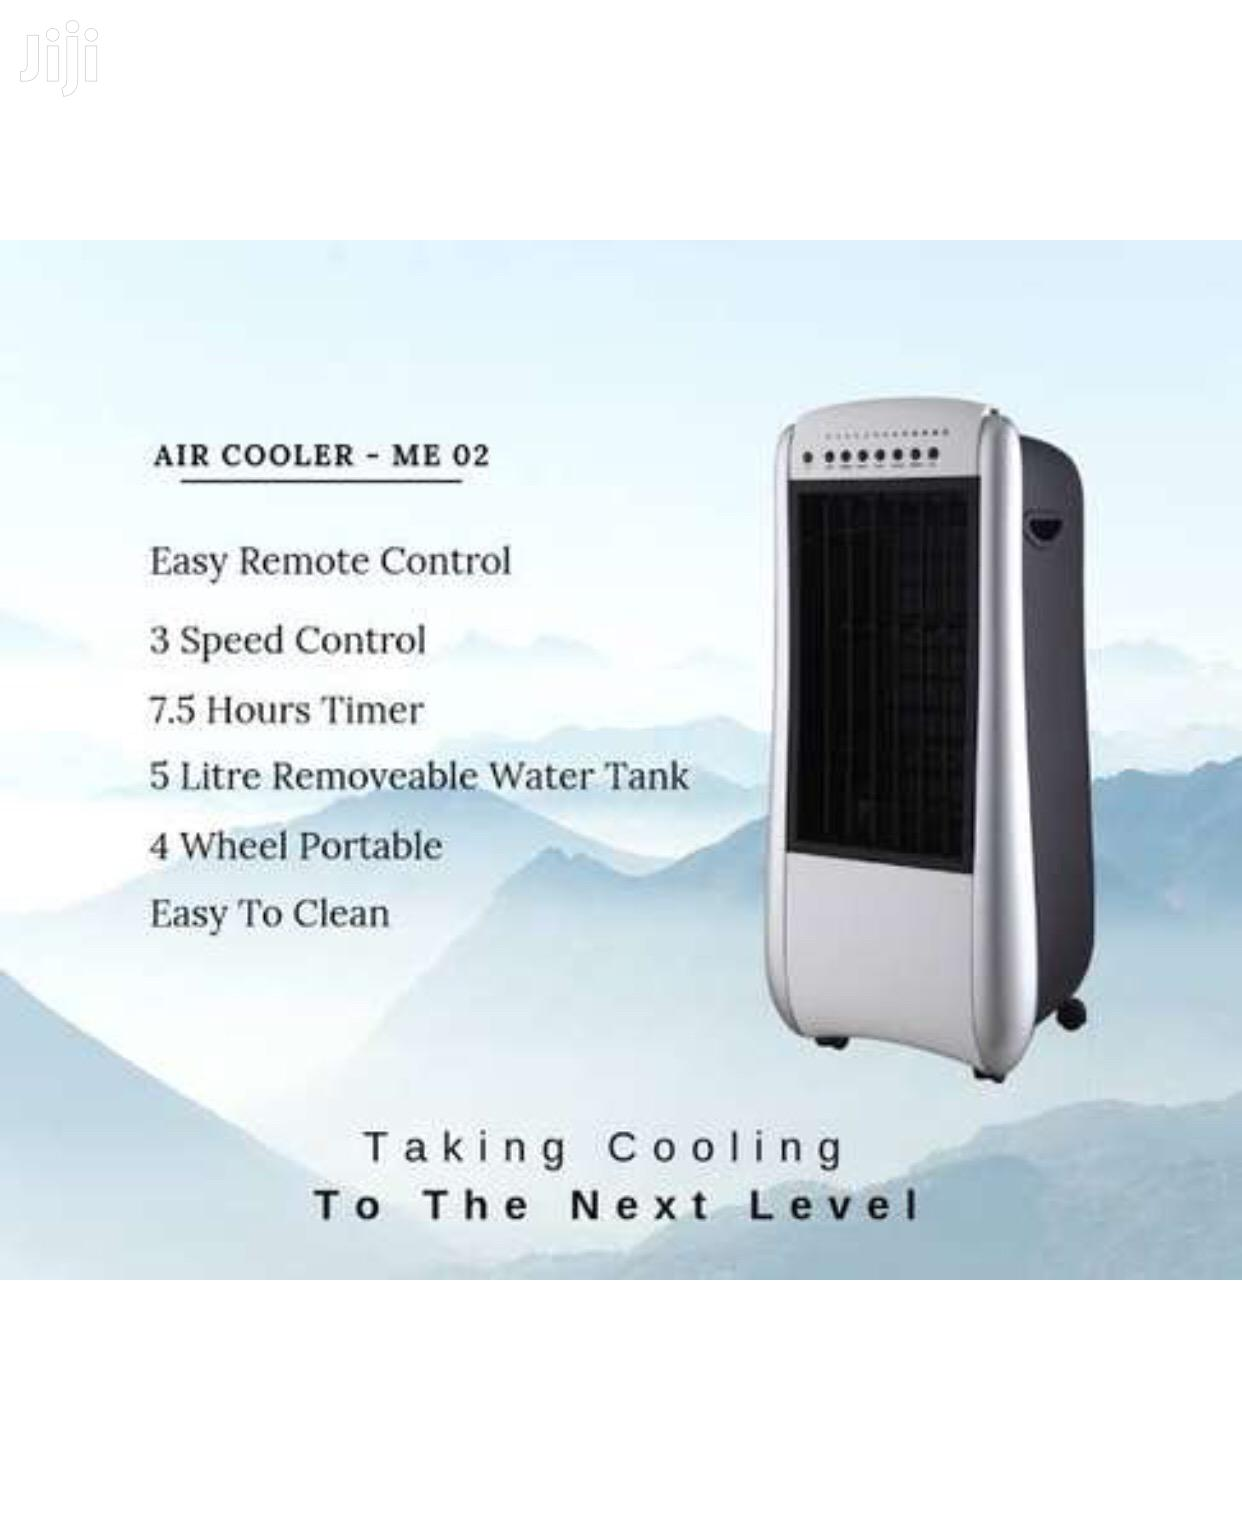 Dolphin Air Cooler